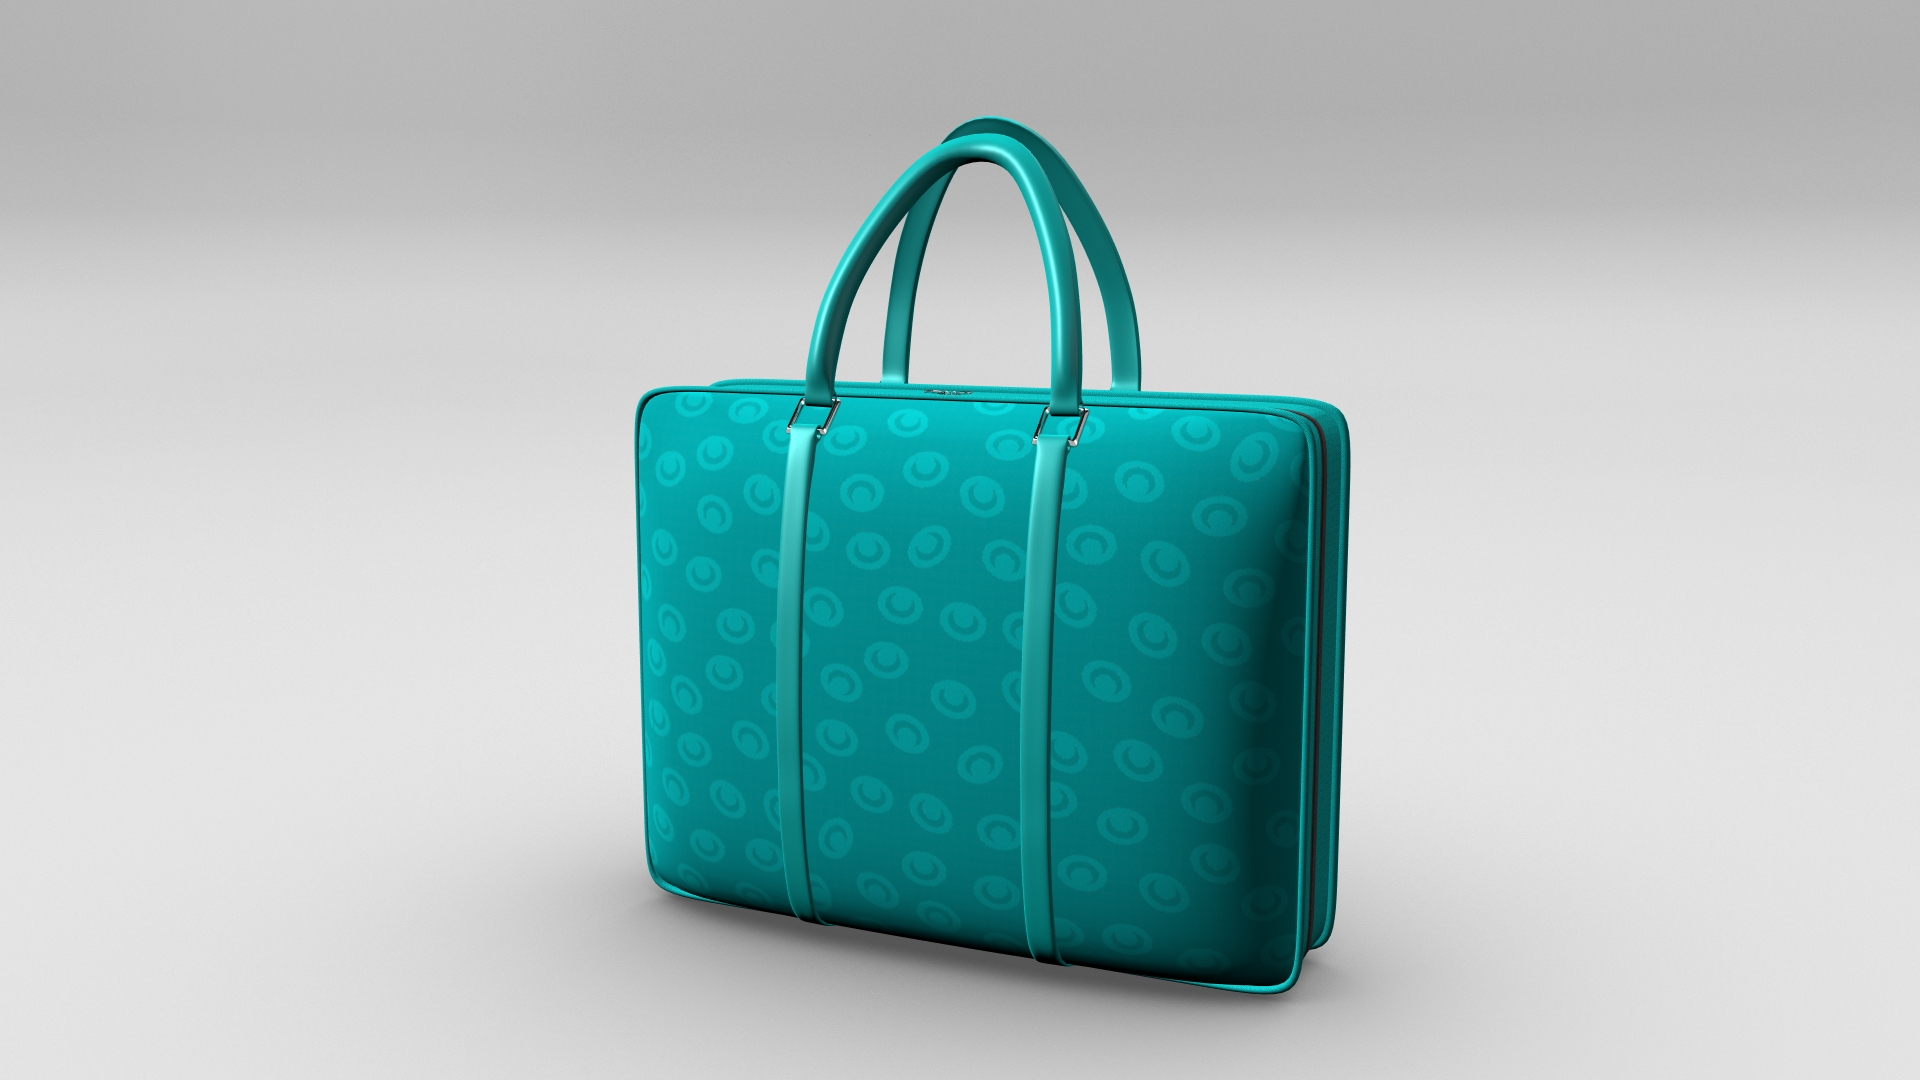 ladies handbag 3d model max fbx ma mb obj 286058